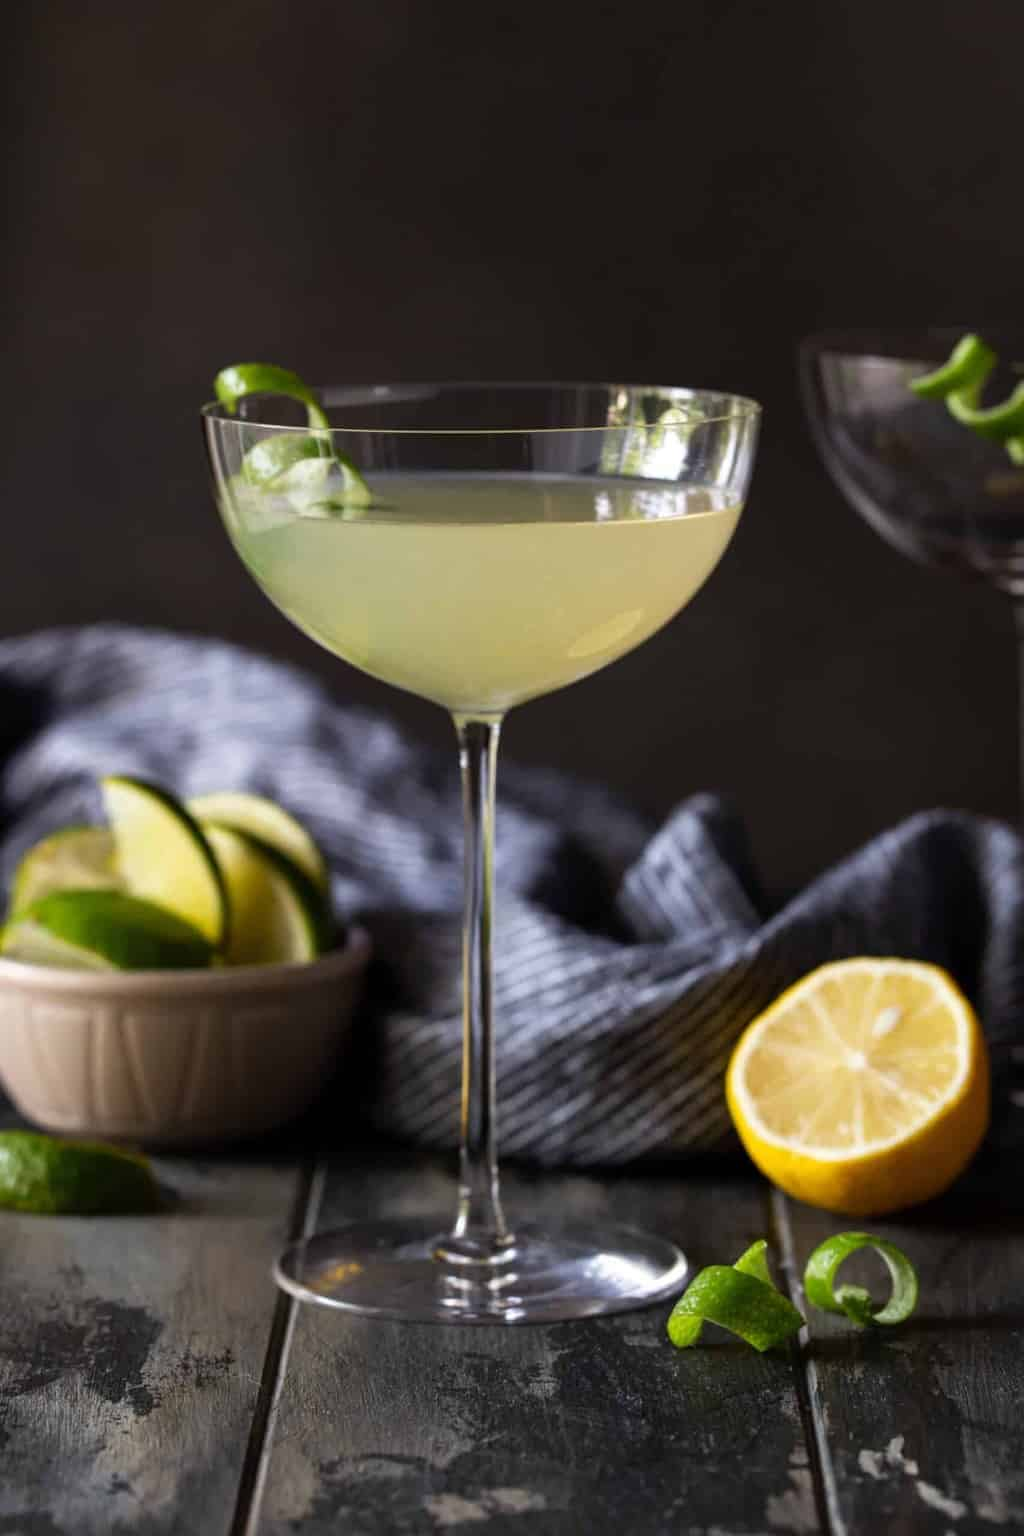 Elderflower martini recipe in tall coupe glass on a dark background with half of a lemon and lime on plate and lime twist for garnish.